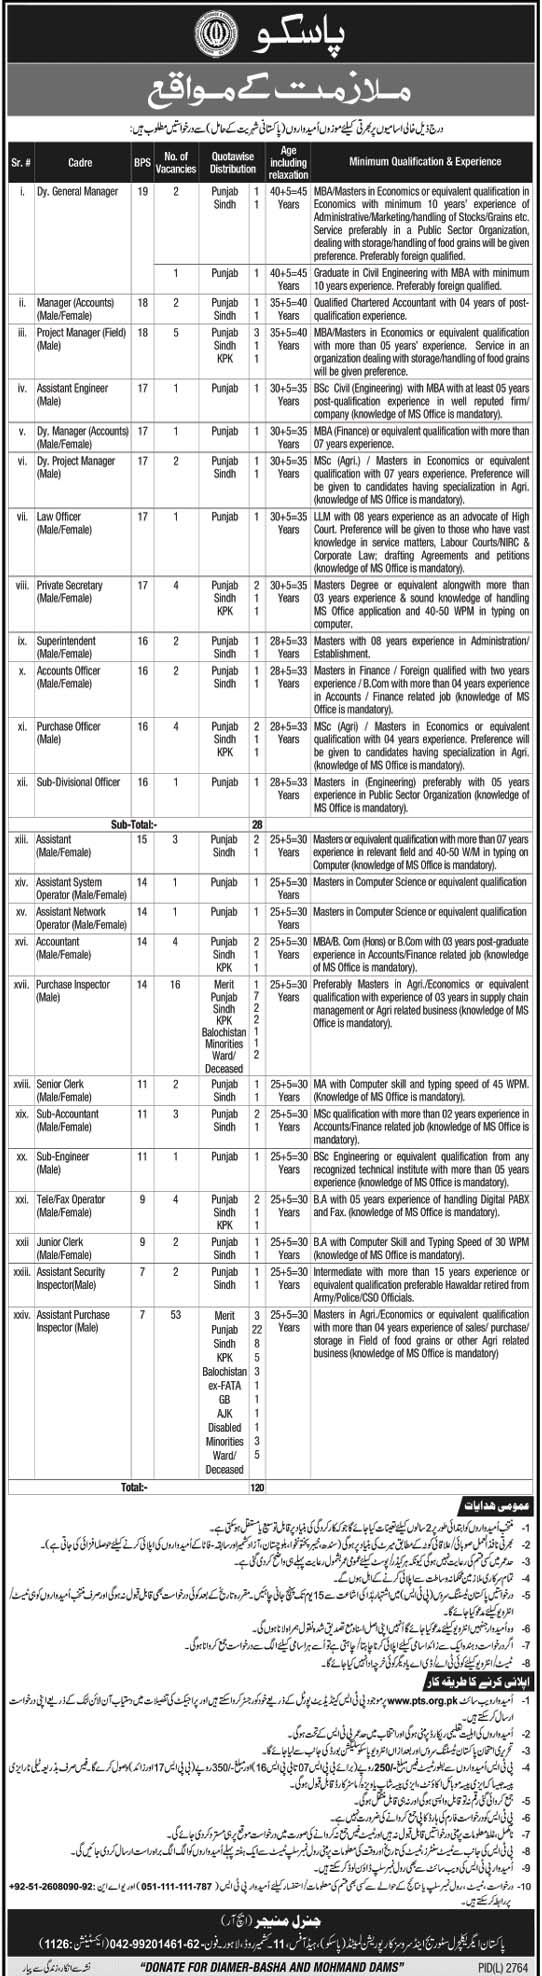 Pakistan Agricultural Storage Services Corporation Jobs 2020 PTS Apply Online Eligibility Criteria